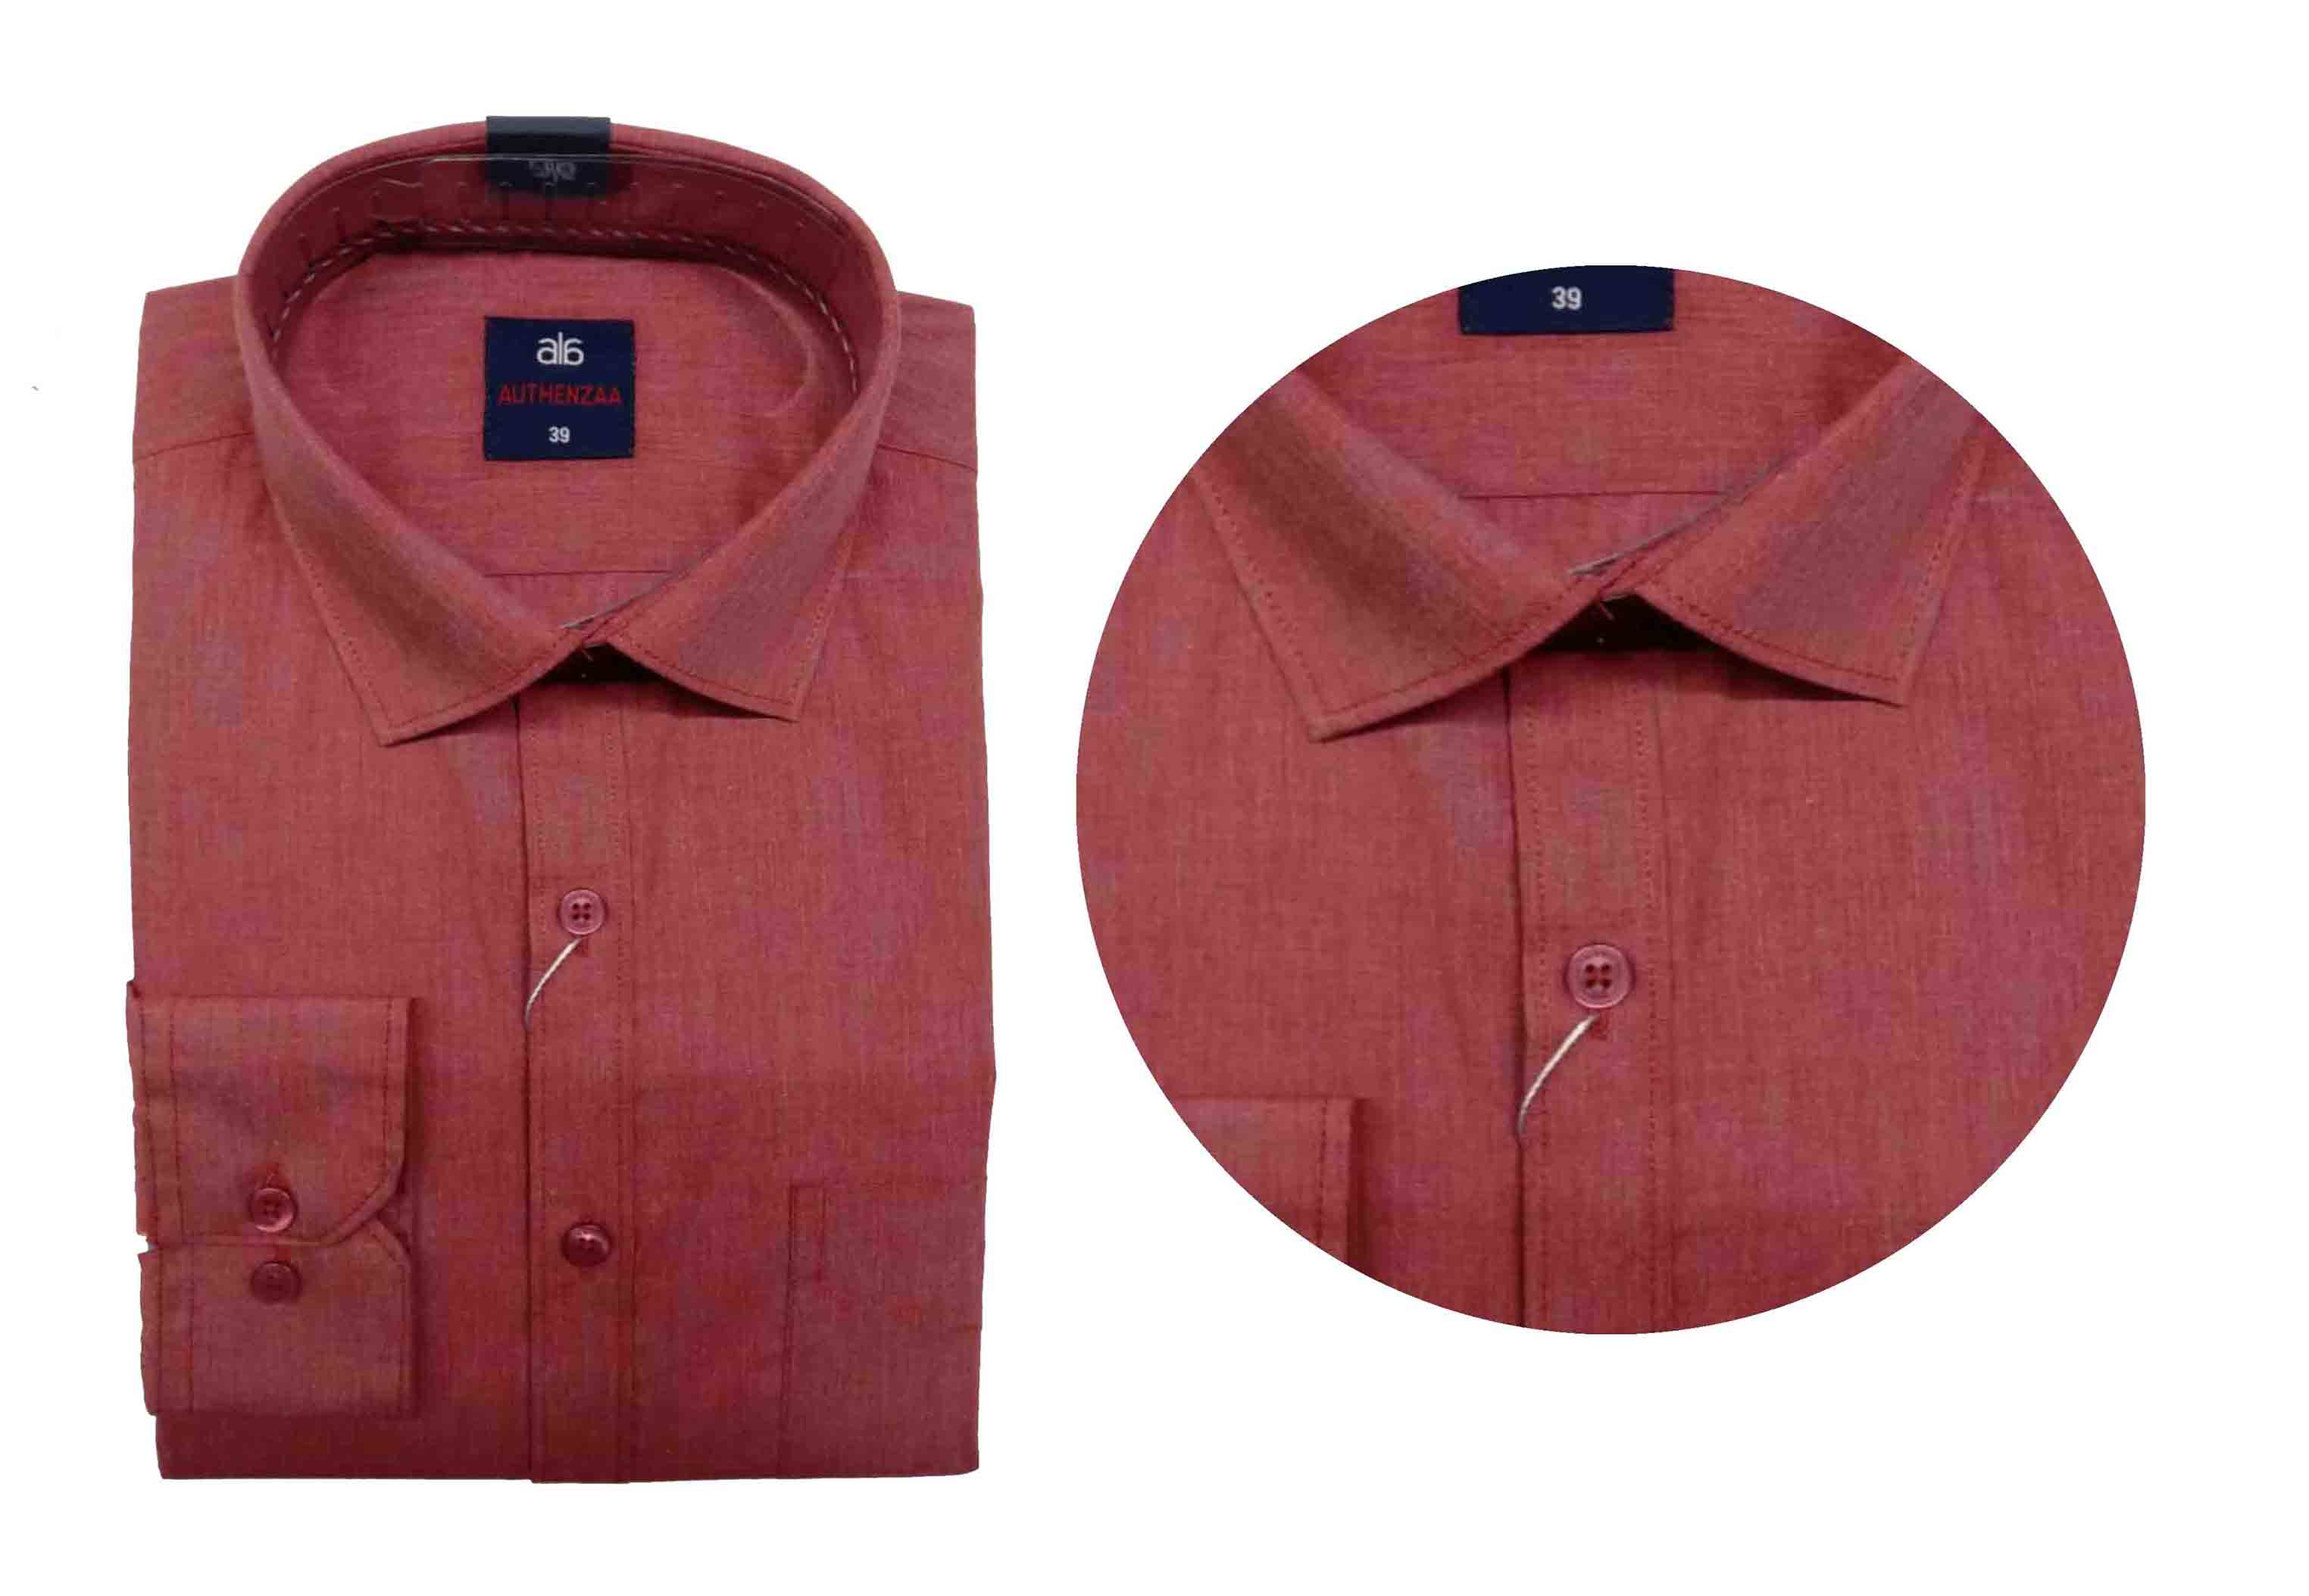 BT WALKMAN 2019-RED MEN'S FORMAL SHIRT